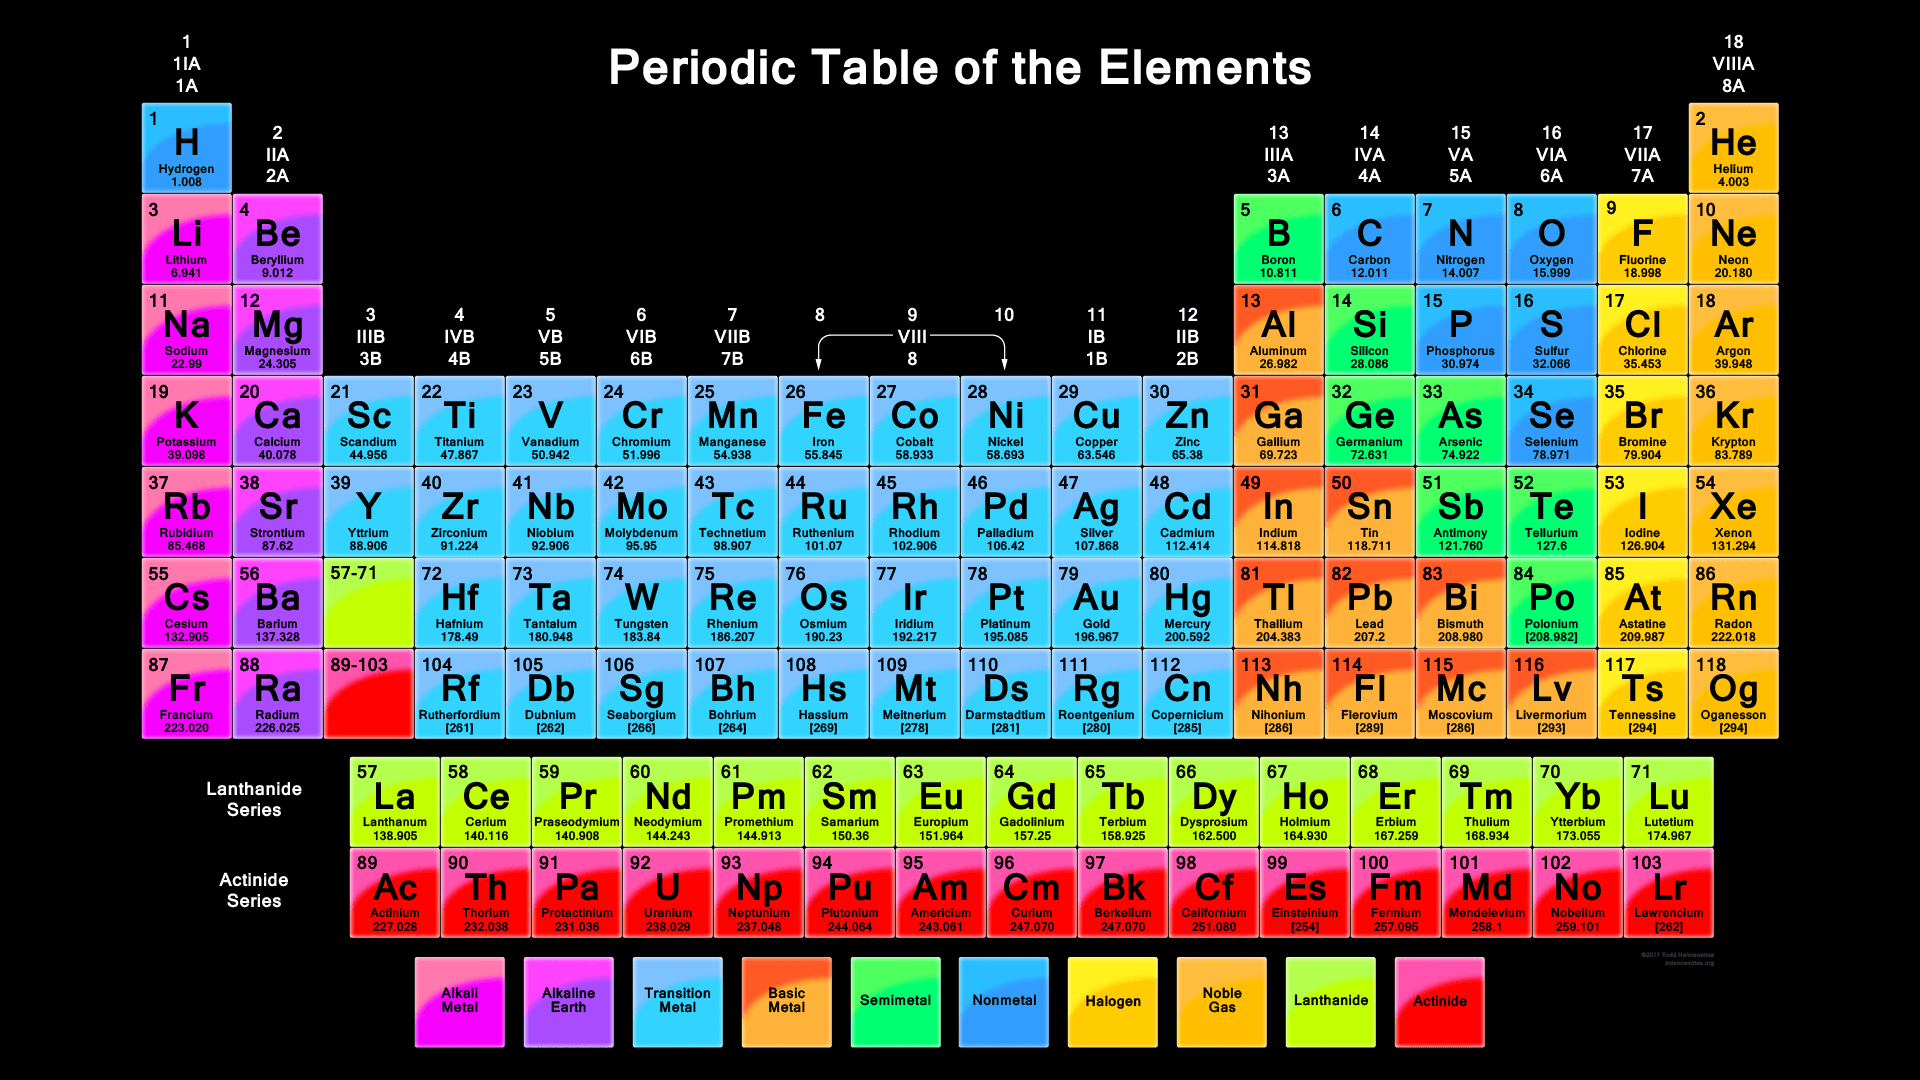 Periodic table pdf 2018 edition with 118 elements table on whitetable on black urtaz Gallery